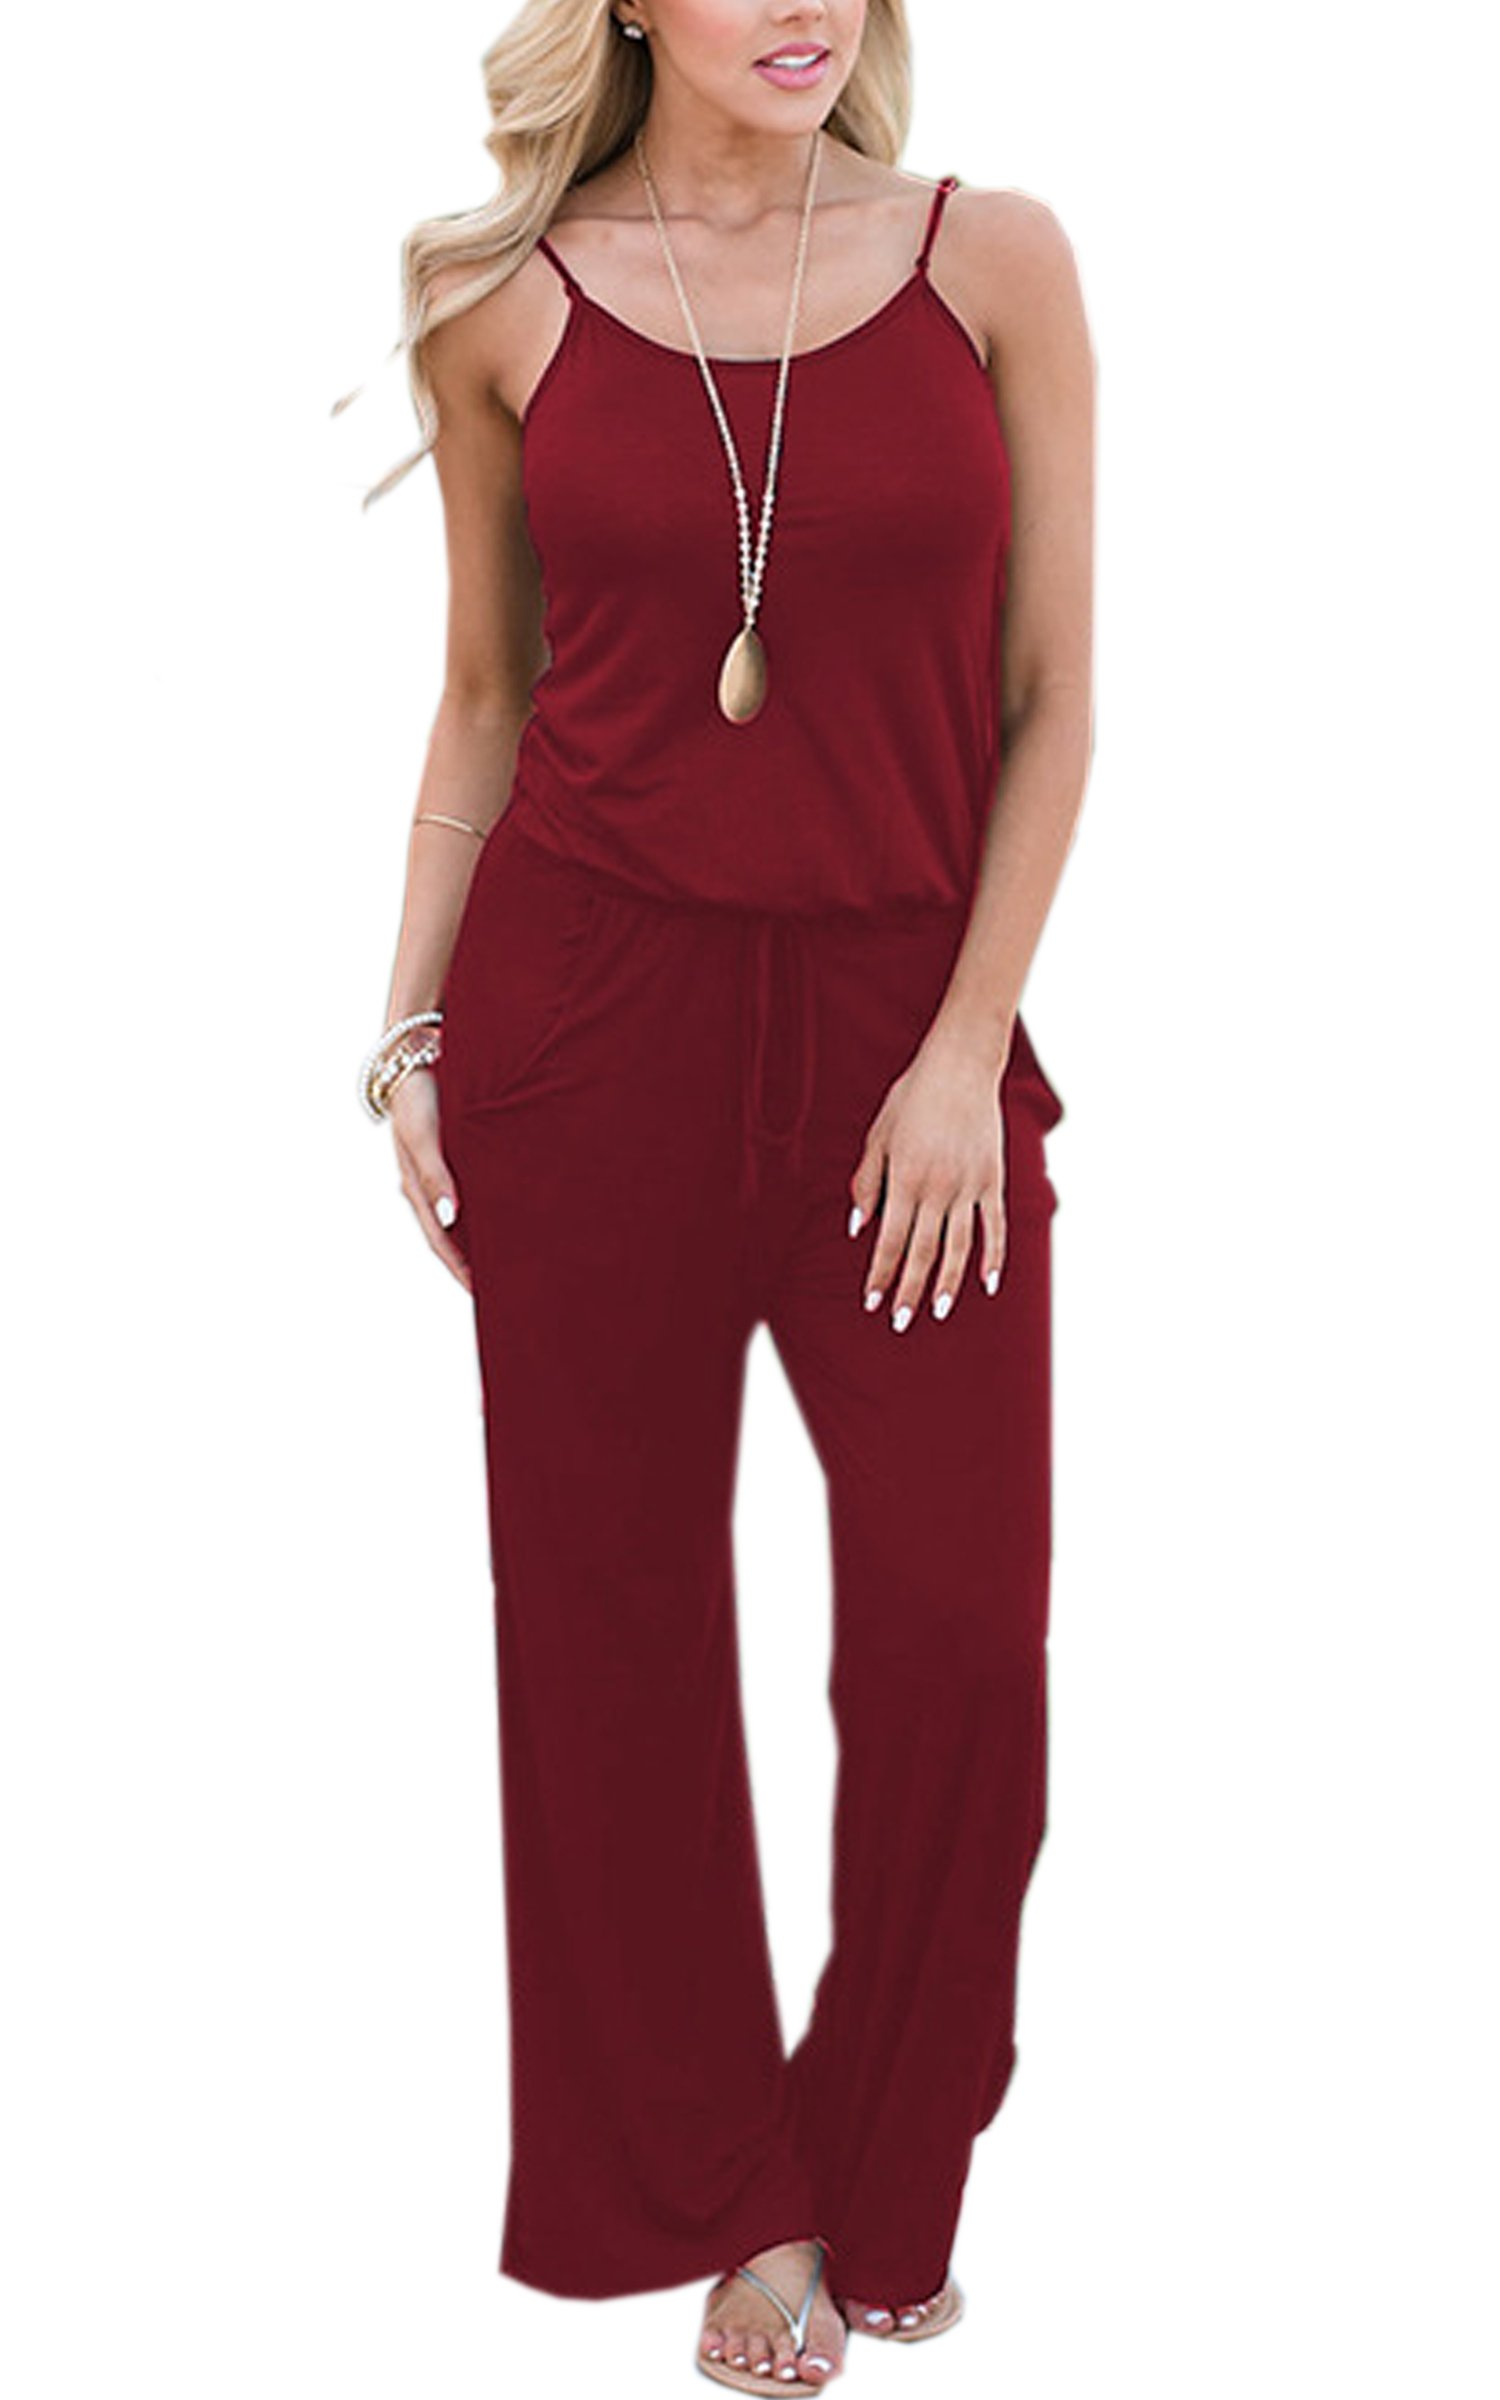 ECOWISH Womens Jumpsuits Summer Floral Printed Spaghetti Strap Sleeveless Casual Jumpsuit Rompers 0900 Wine Red S